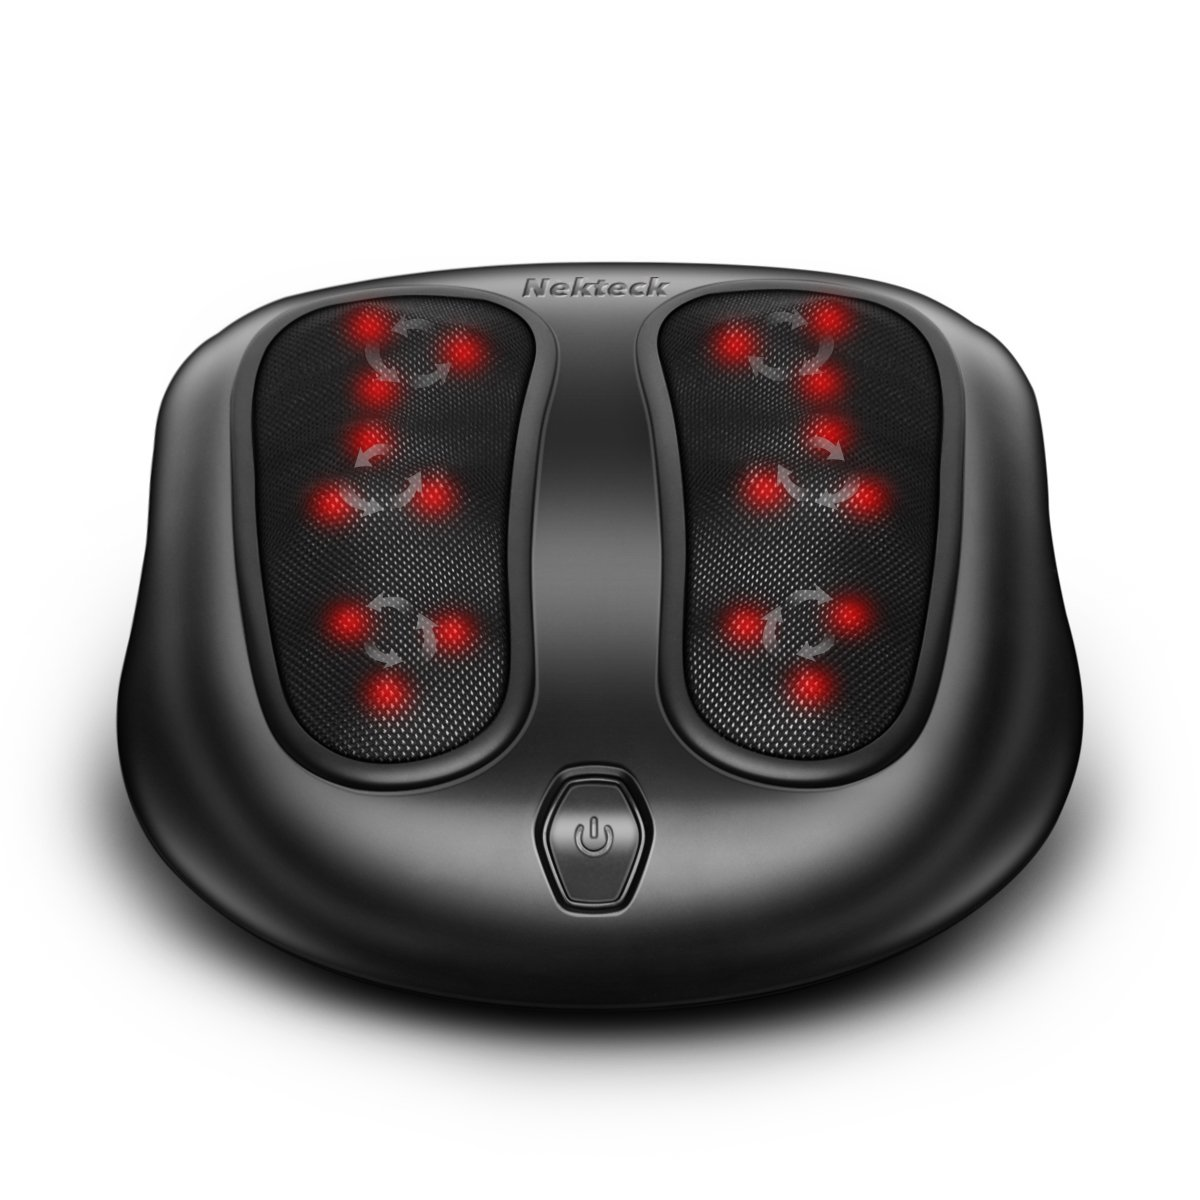 Nekteck Foot Massager review